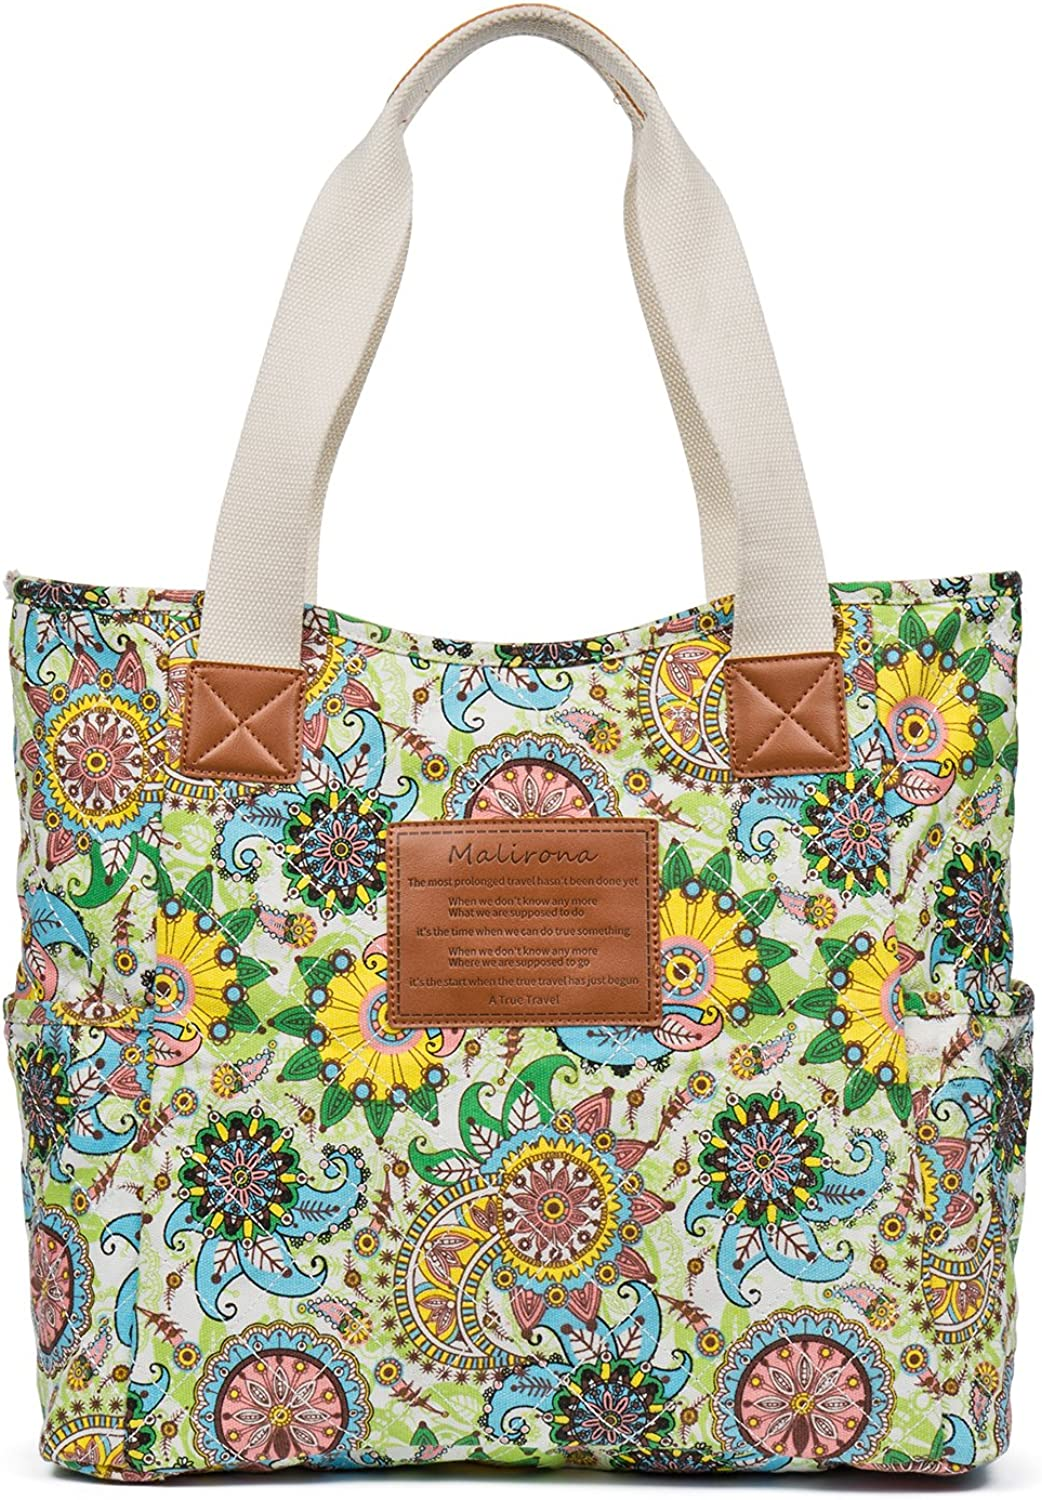 Malirona Canvas Beach Bags and Totes for Women Zippered Beach Shoulder Bag Green Flower